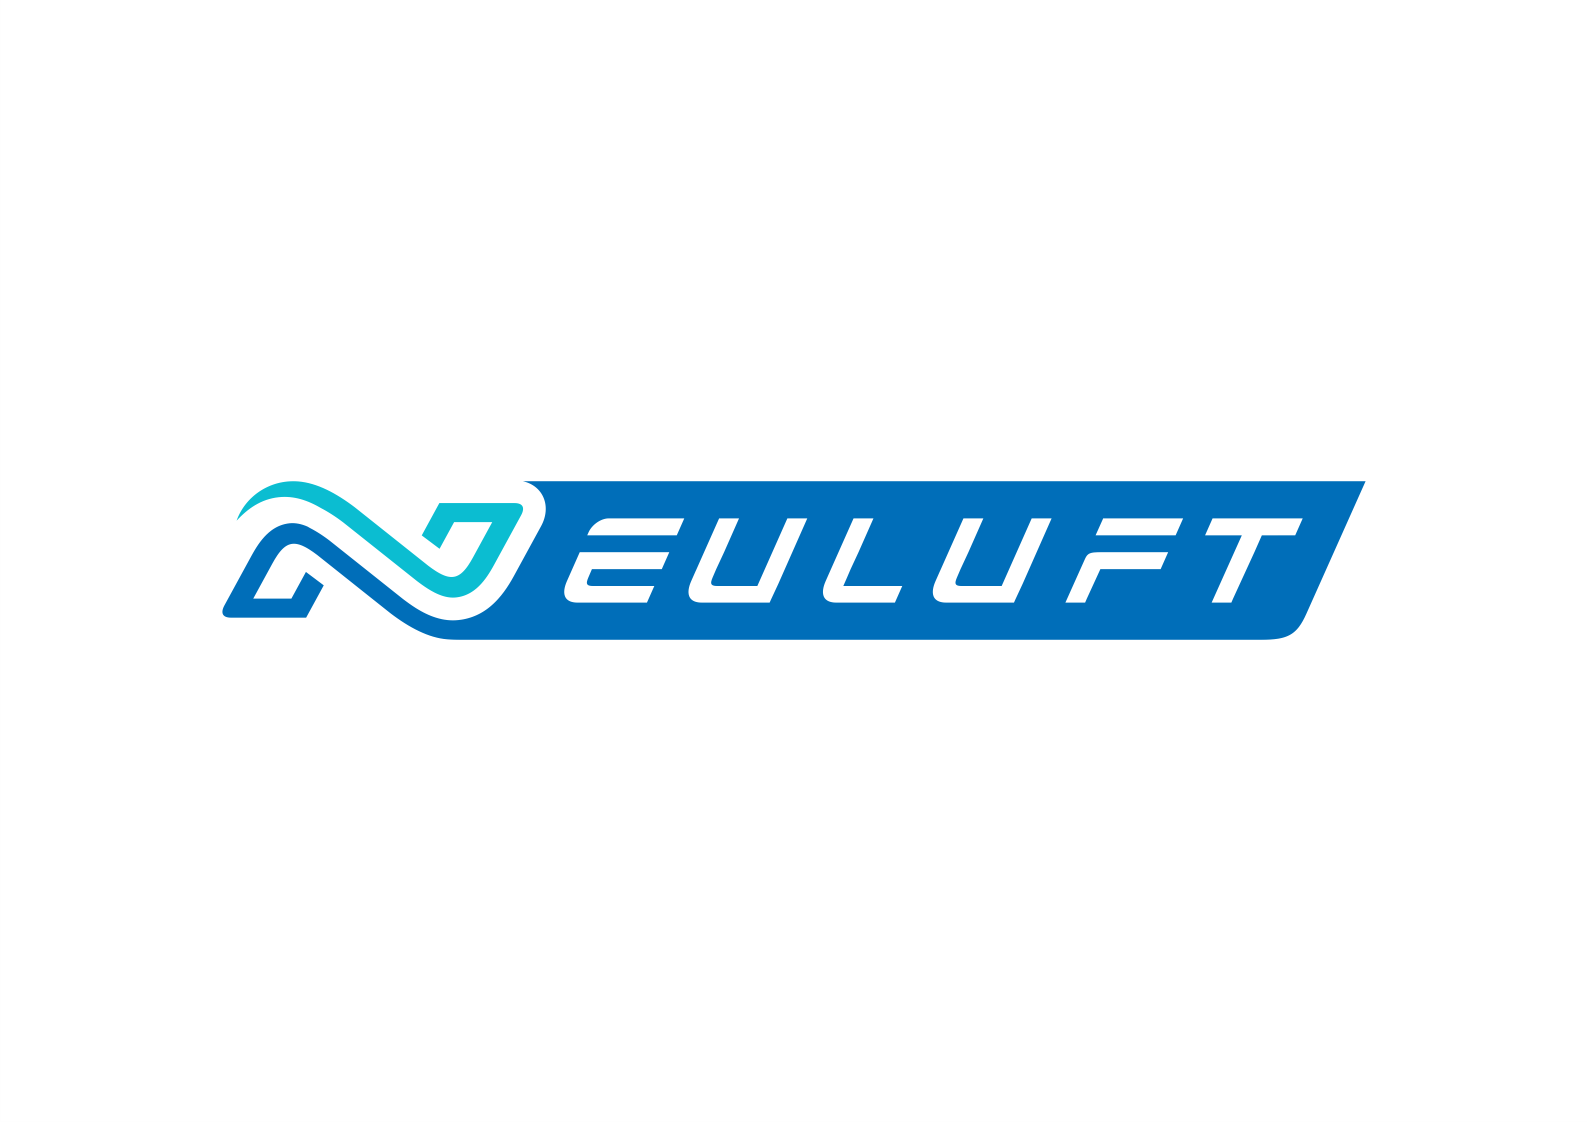 """Outdoor Activity Equipment  Brand Logo """"NEULUFT"""" with Follow-Up Projects"""